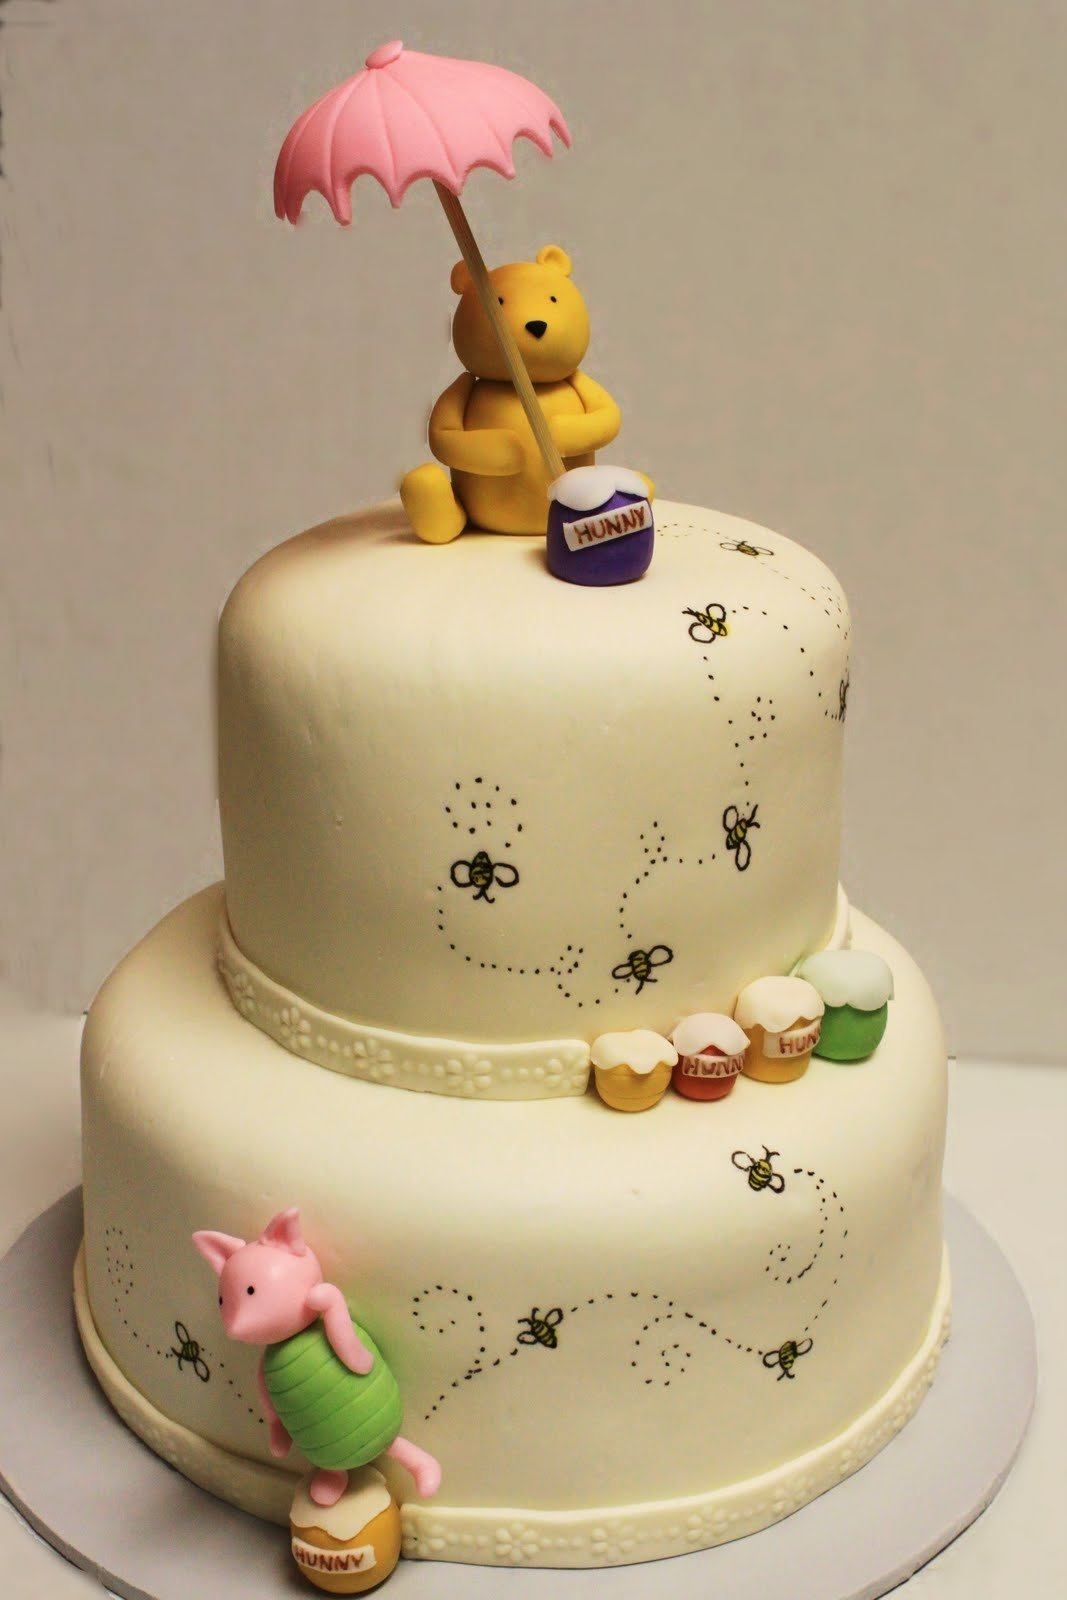 10 Fantastic Winnie The Pooh Cake Ideas layers of love winnie the pooh shower cake 2021